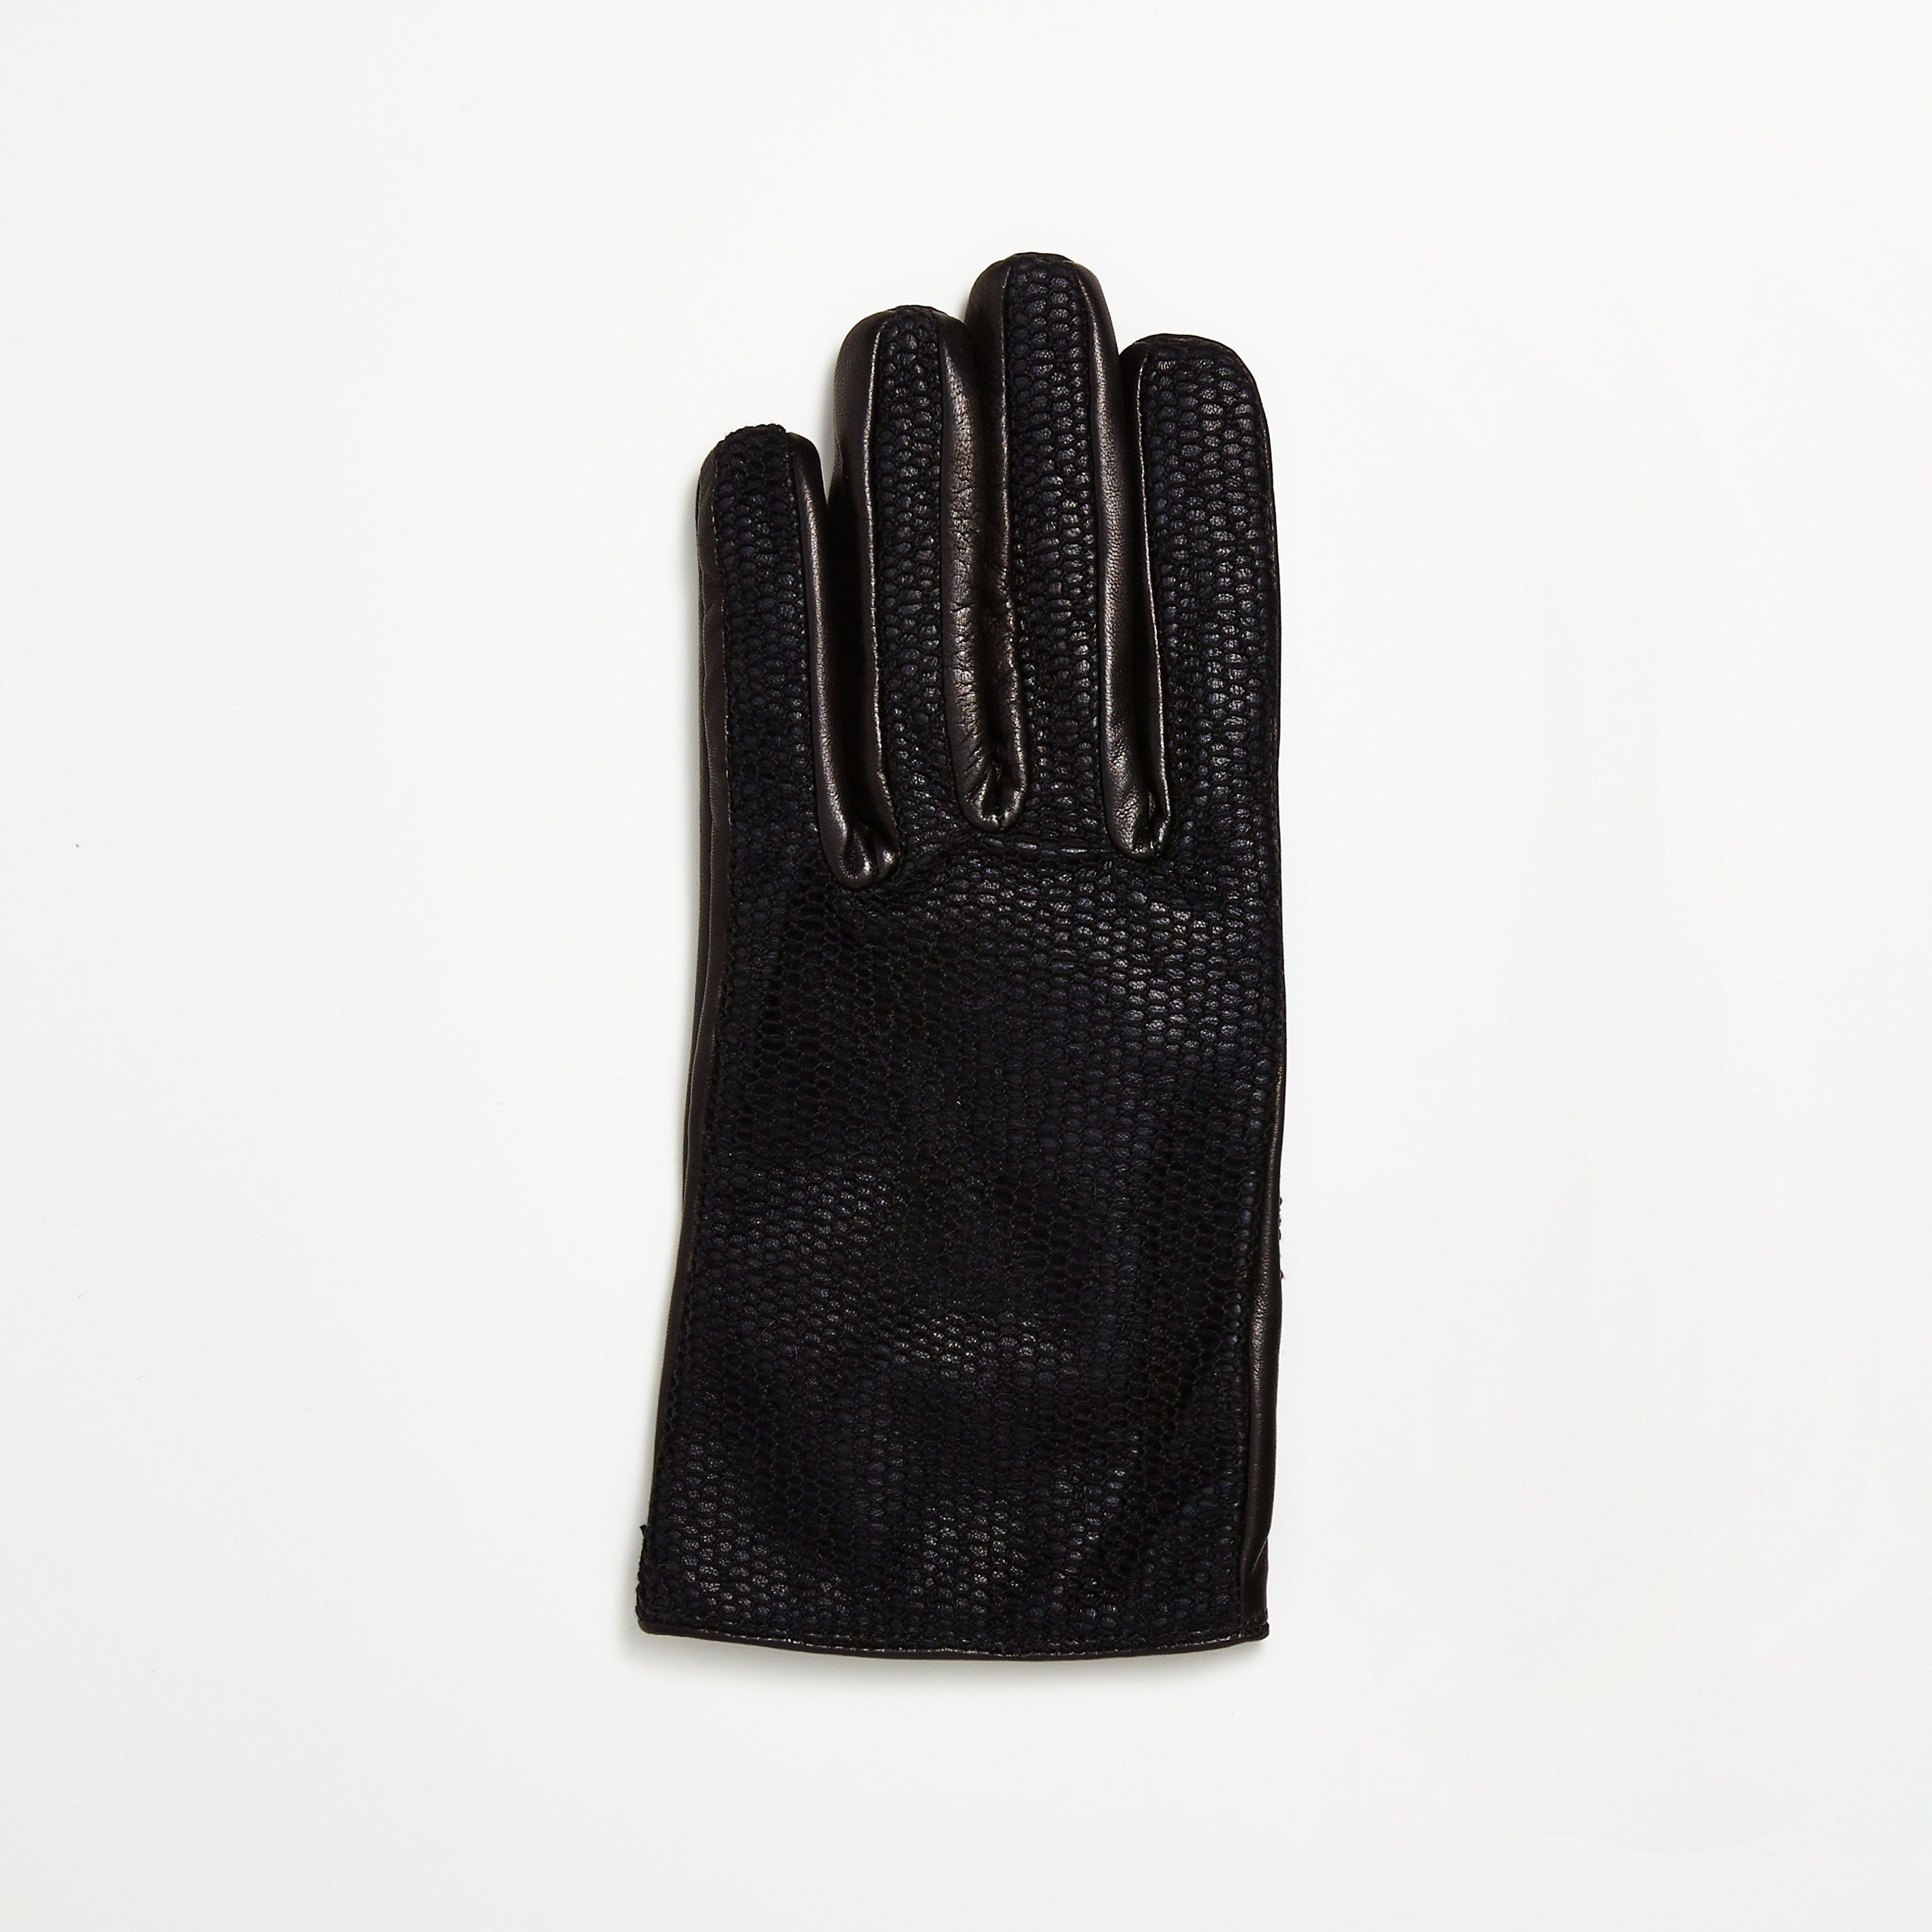 Men's Leather Gloves with Mesh Lace Overlay